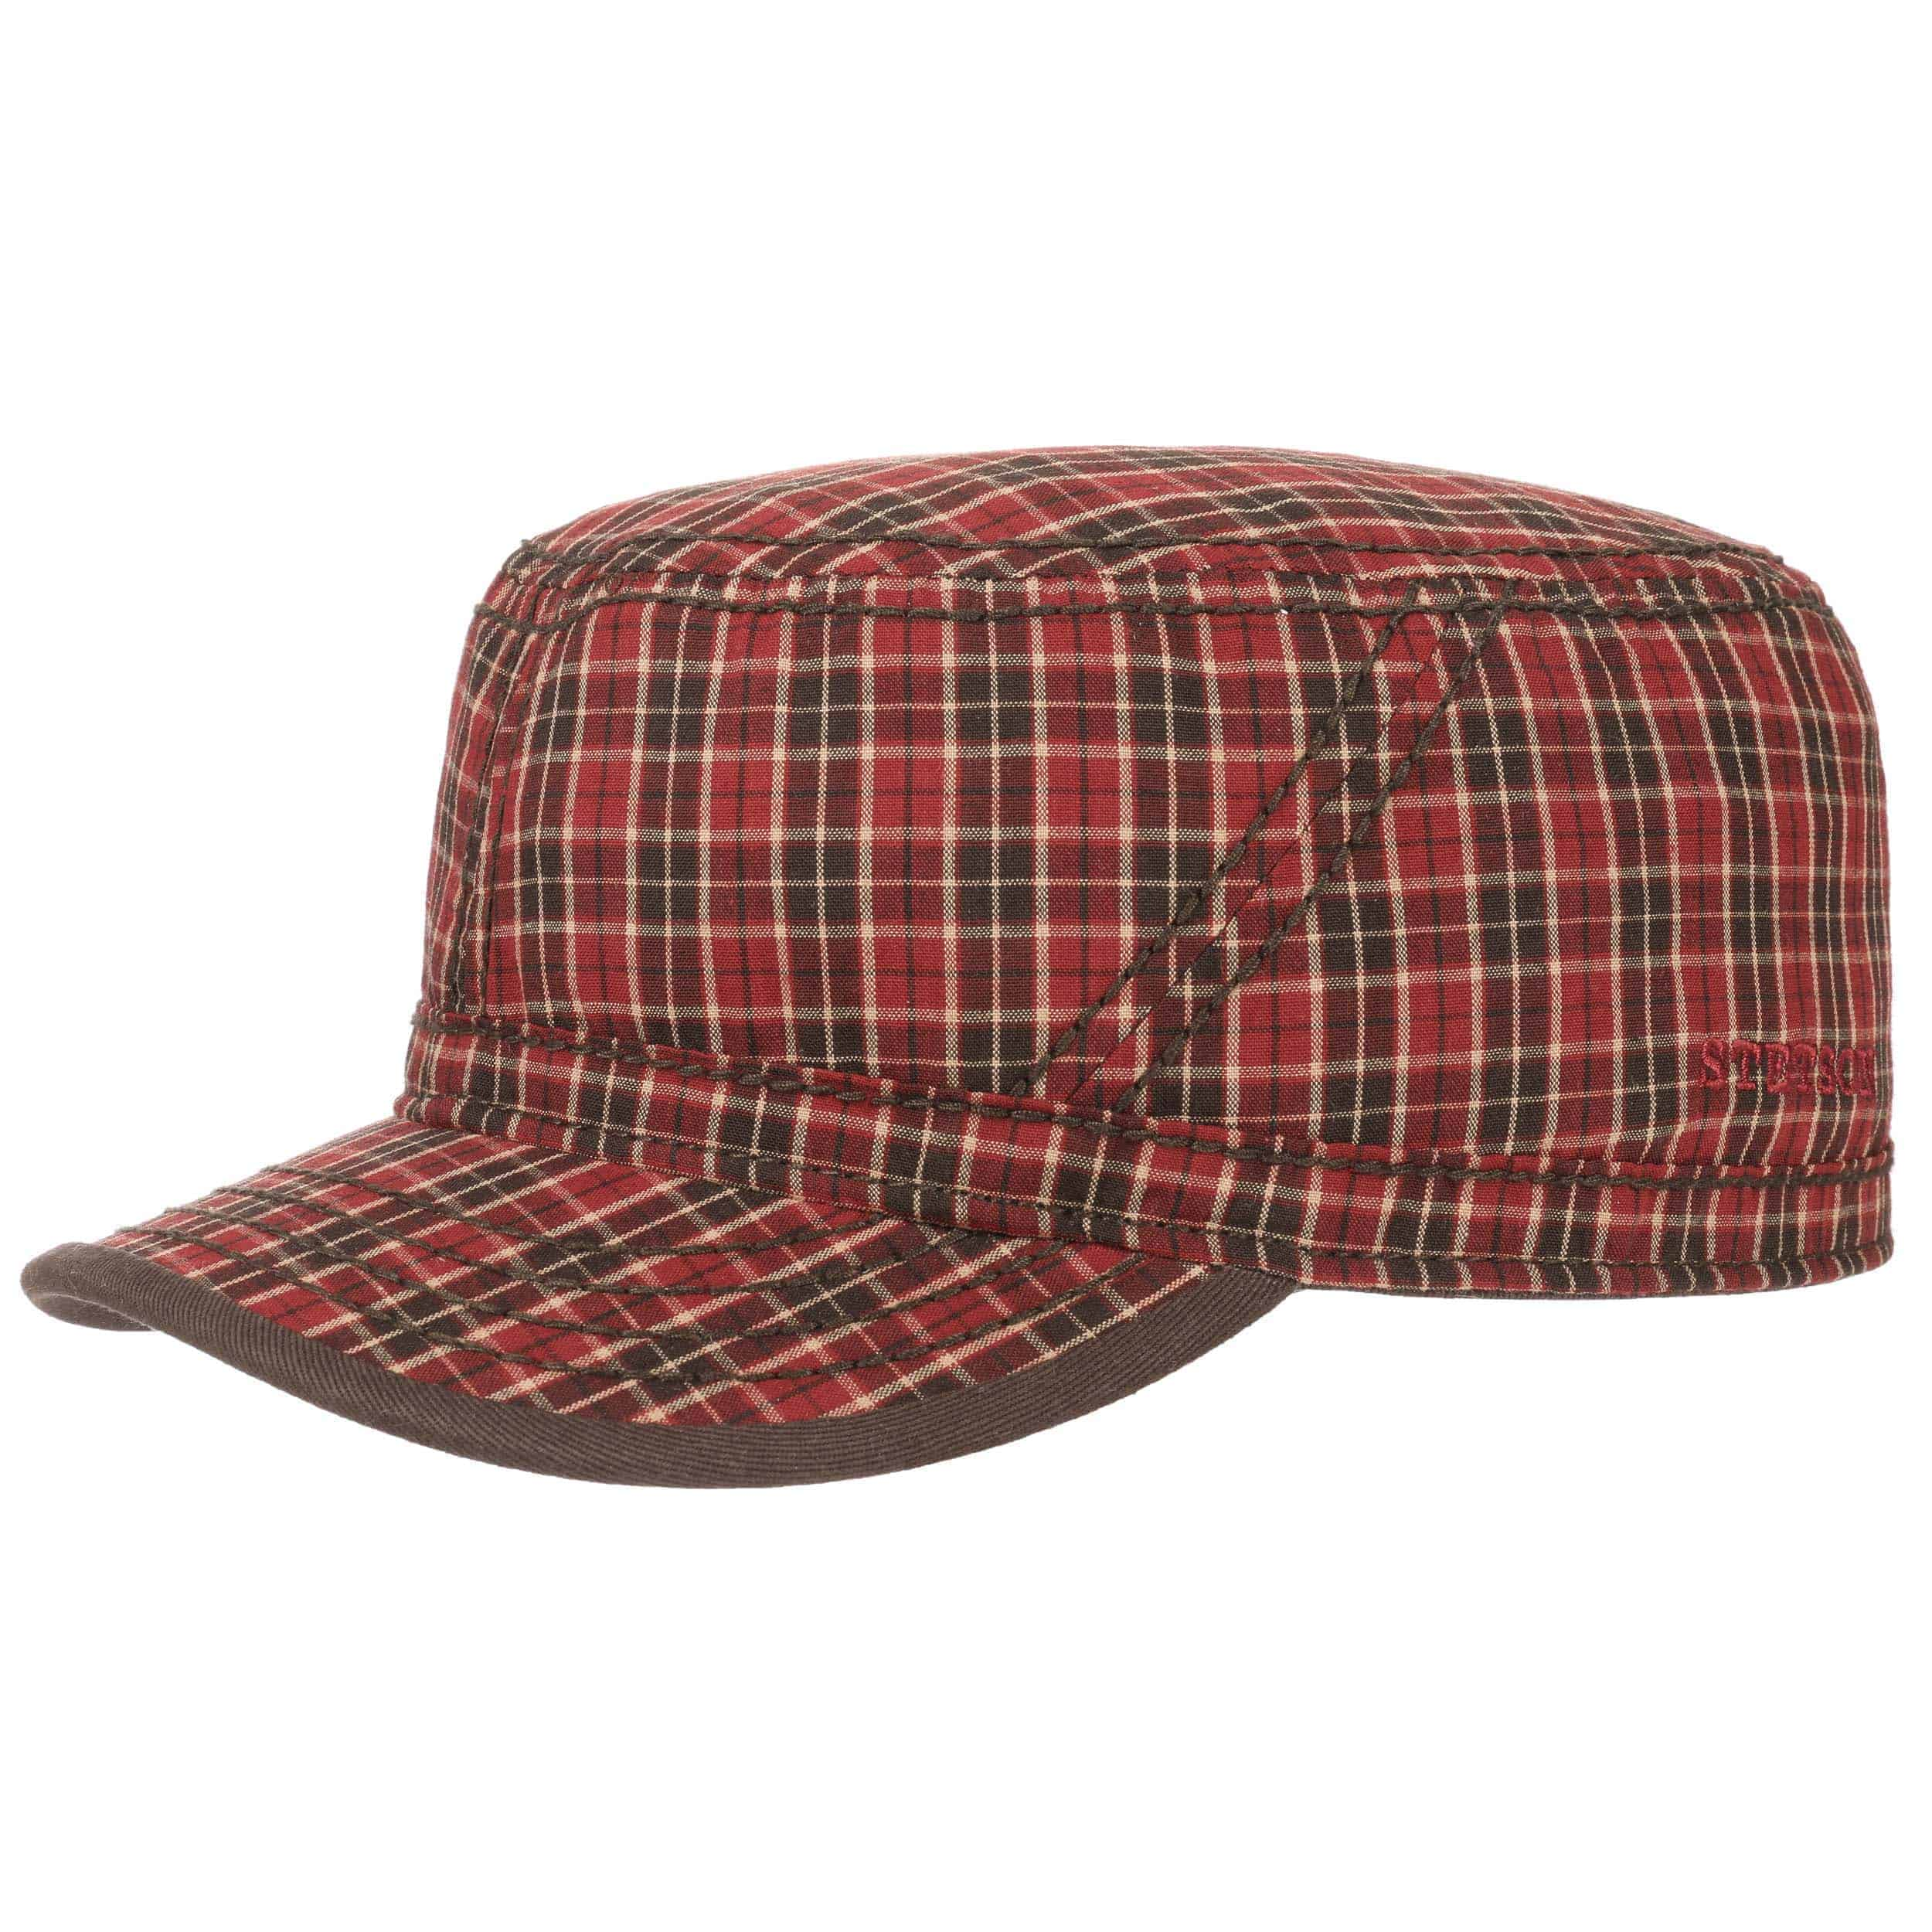 Tustin Armycap By Stetson 39 00